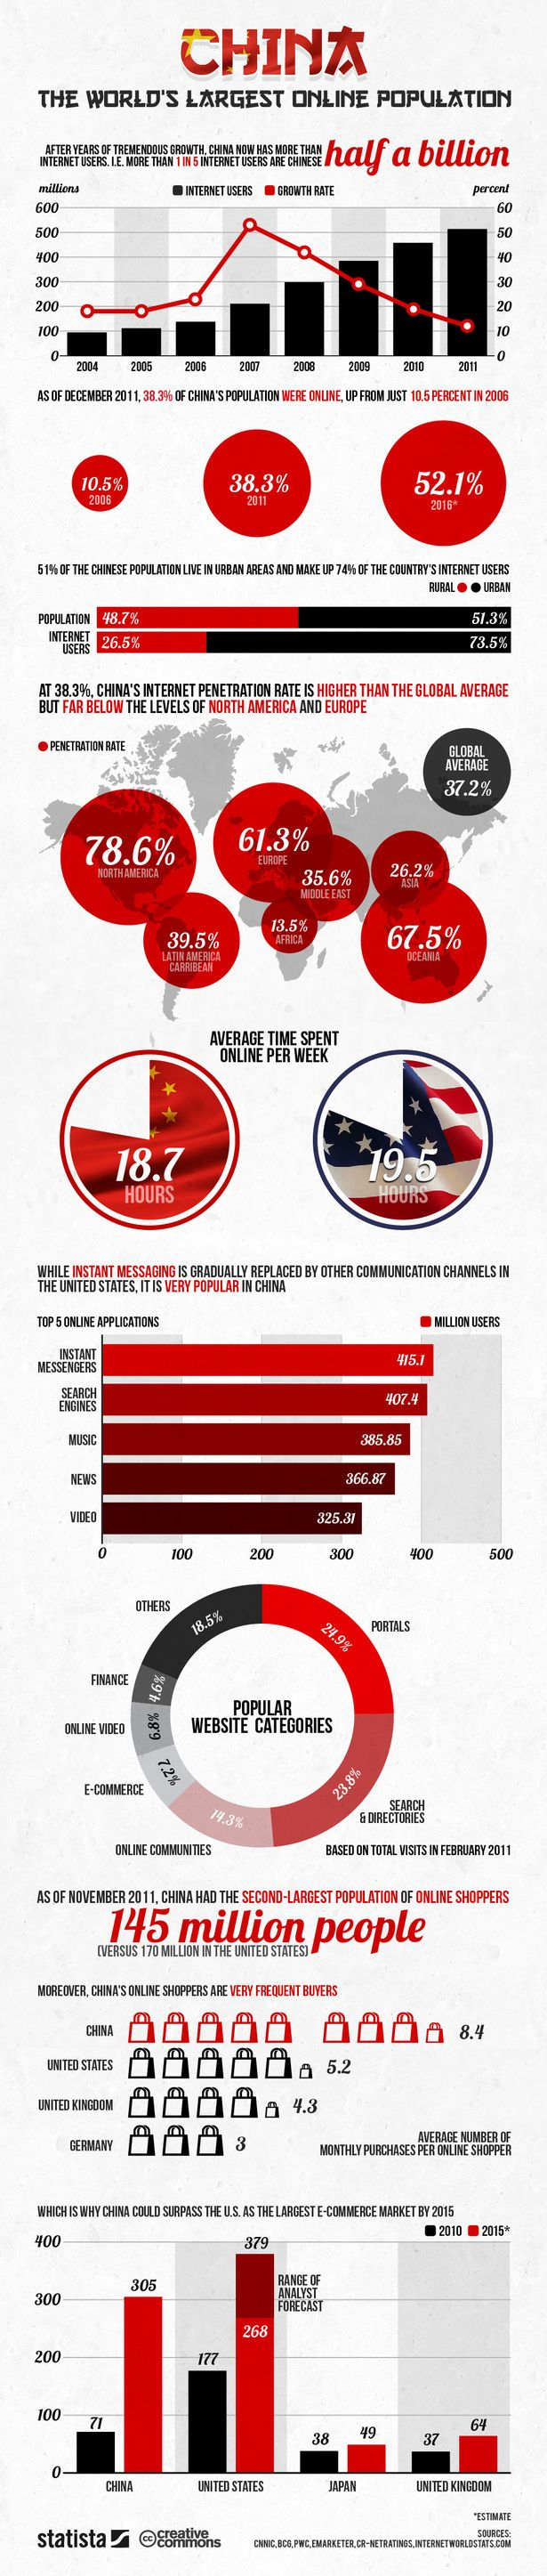 Chine Online Population http://econsultancy.com/uk/blog/9569-china-the-world-s-largest-online-population-infographic